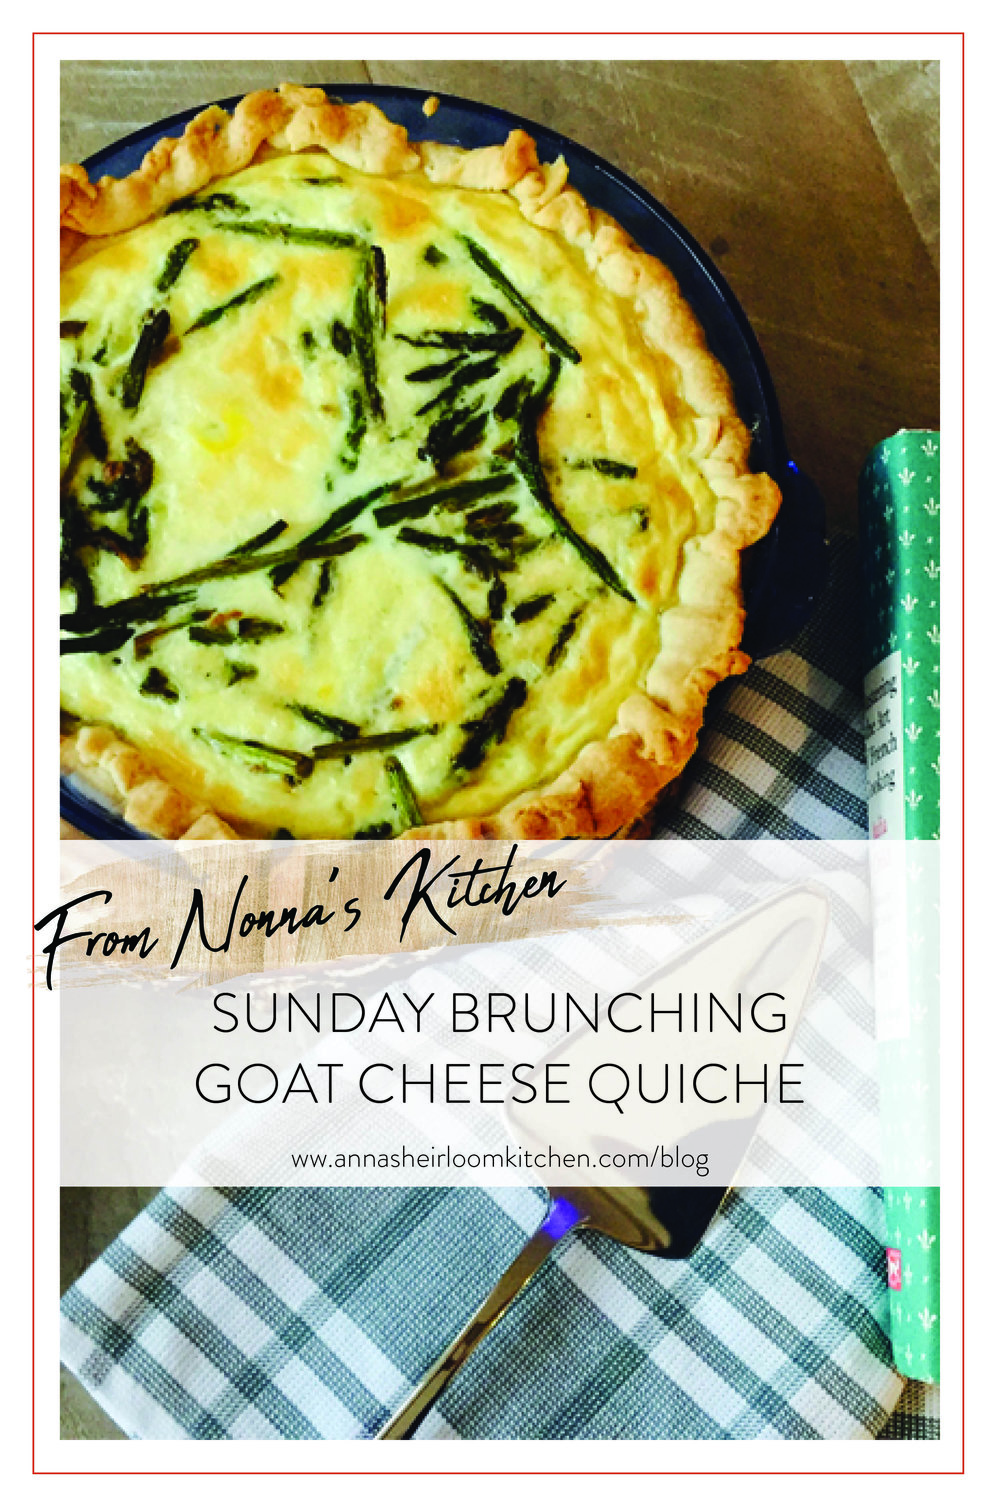 SUNDAY_BRUNCH_GOAT_CHEESE_QUICHE_RECIPE